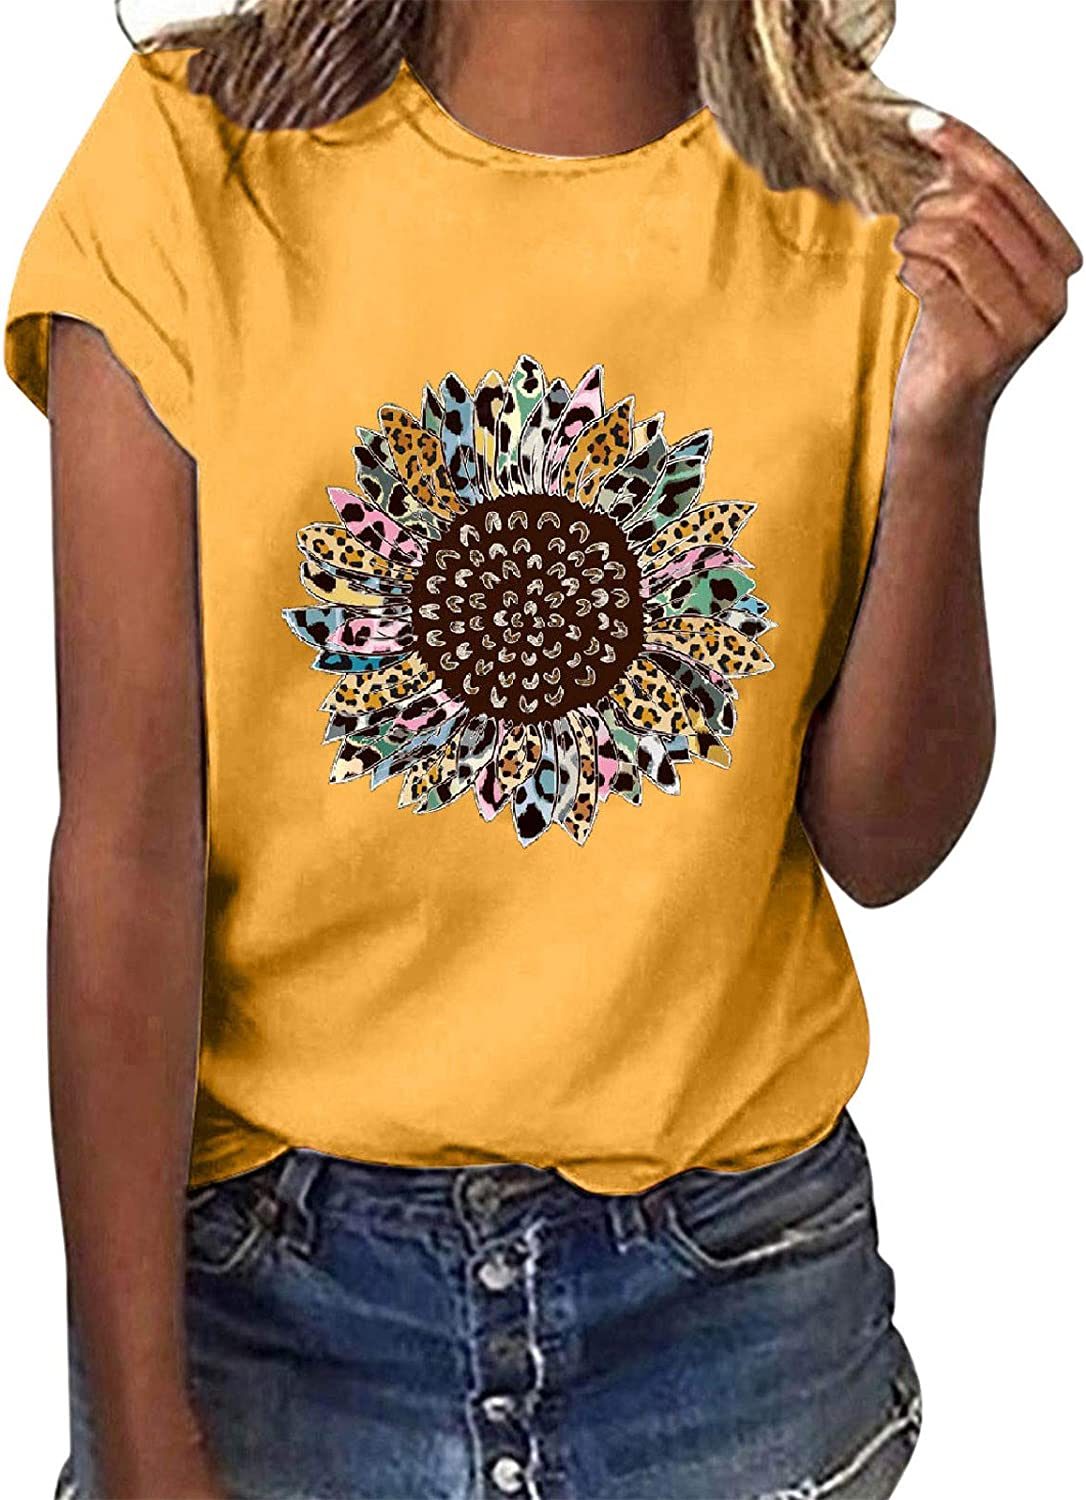 Forwelly Short Sleeve T Shirt for Women Summer Casual Tee Novelty Sunflower Graphic O Neck Tunic Top Blouse